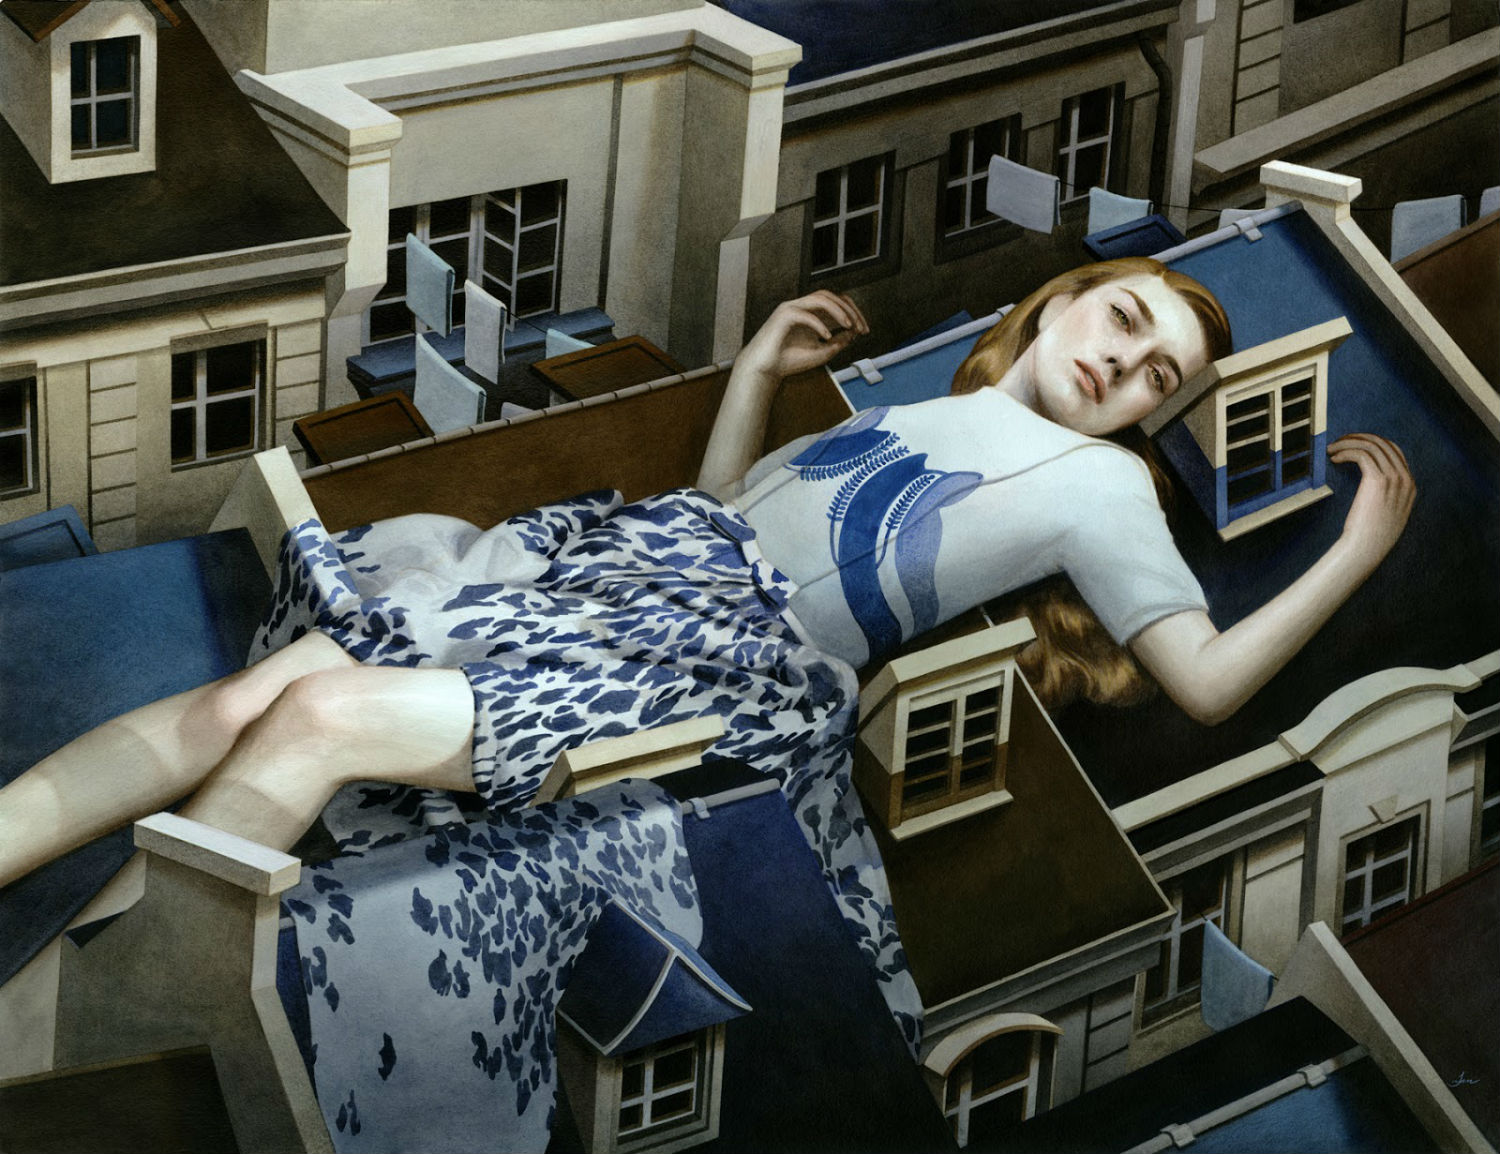 tran nguyen painting building  sleep girl